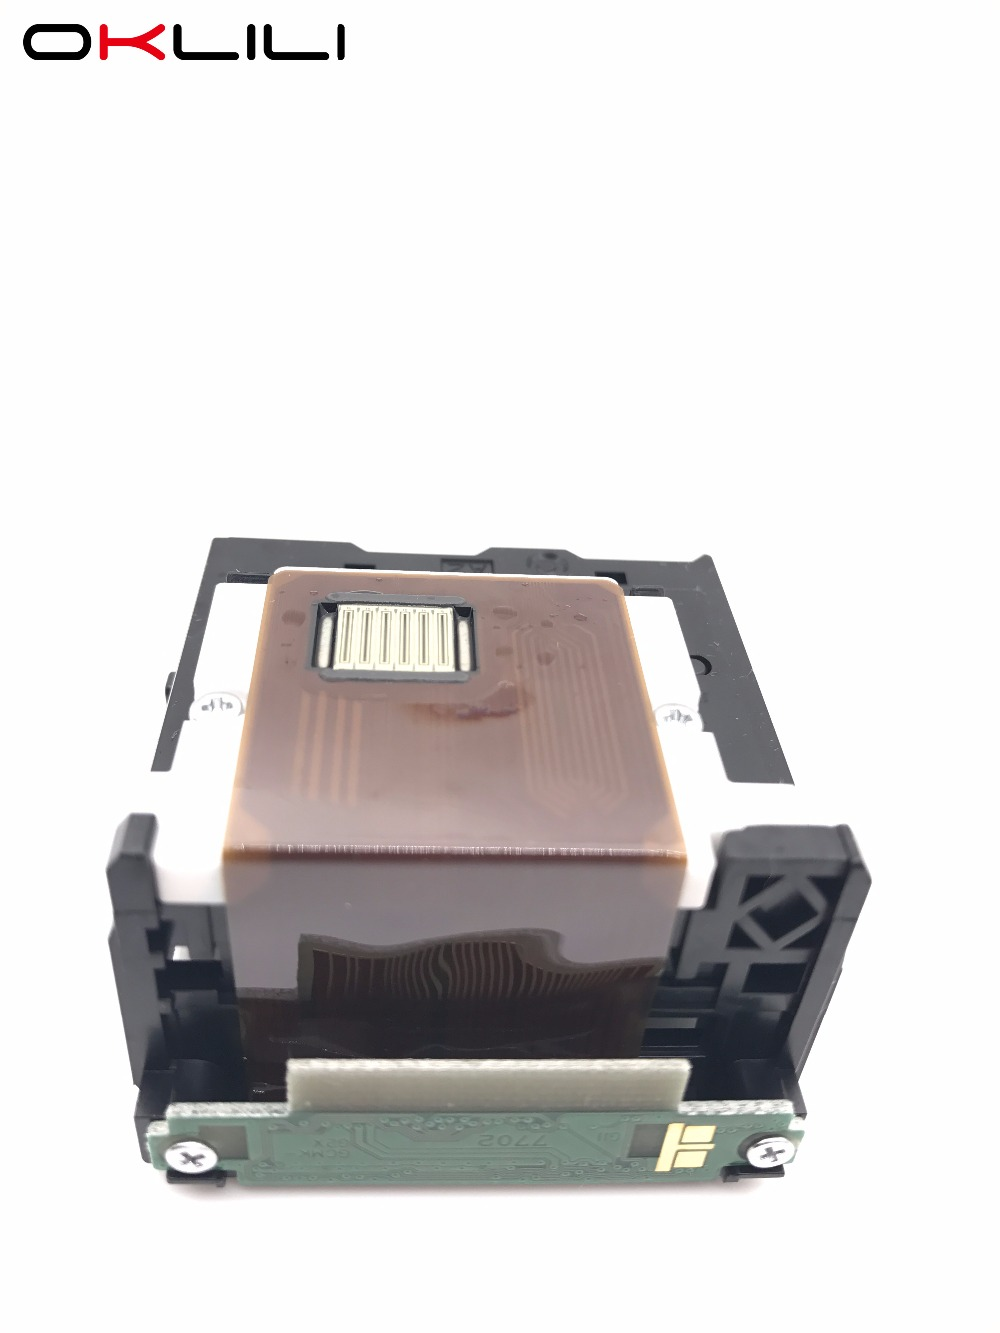 OKLILI ORIGINAL NEW QY6-0069 QY6-0069-000 Printhead Print Head Printer Head for Canon mini260 mini320 qy6 0069 qy6 0069 qy60069 qy6 0069 000 printhead print head printer head remanufactured for canon mini260 mini320